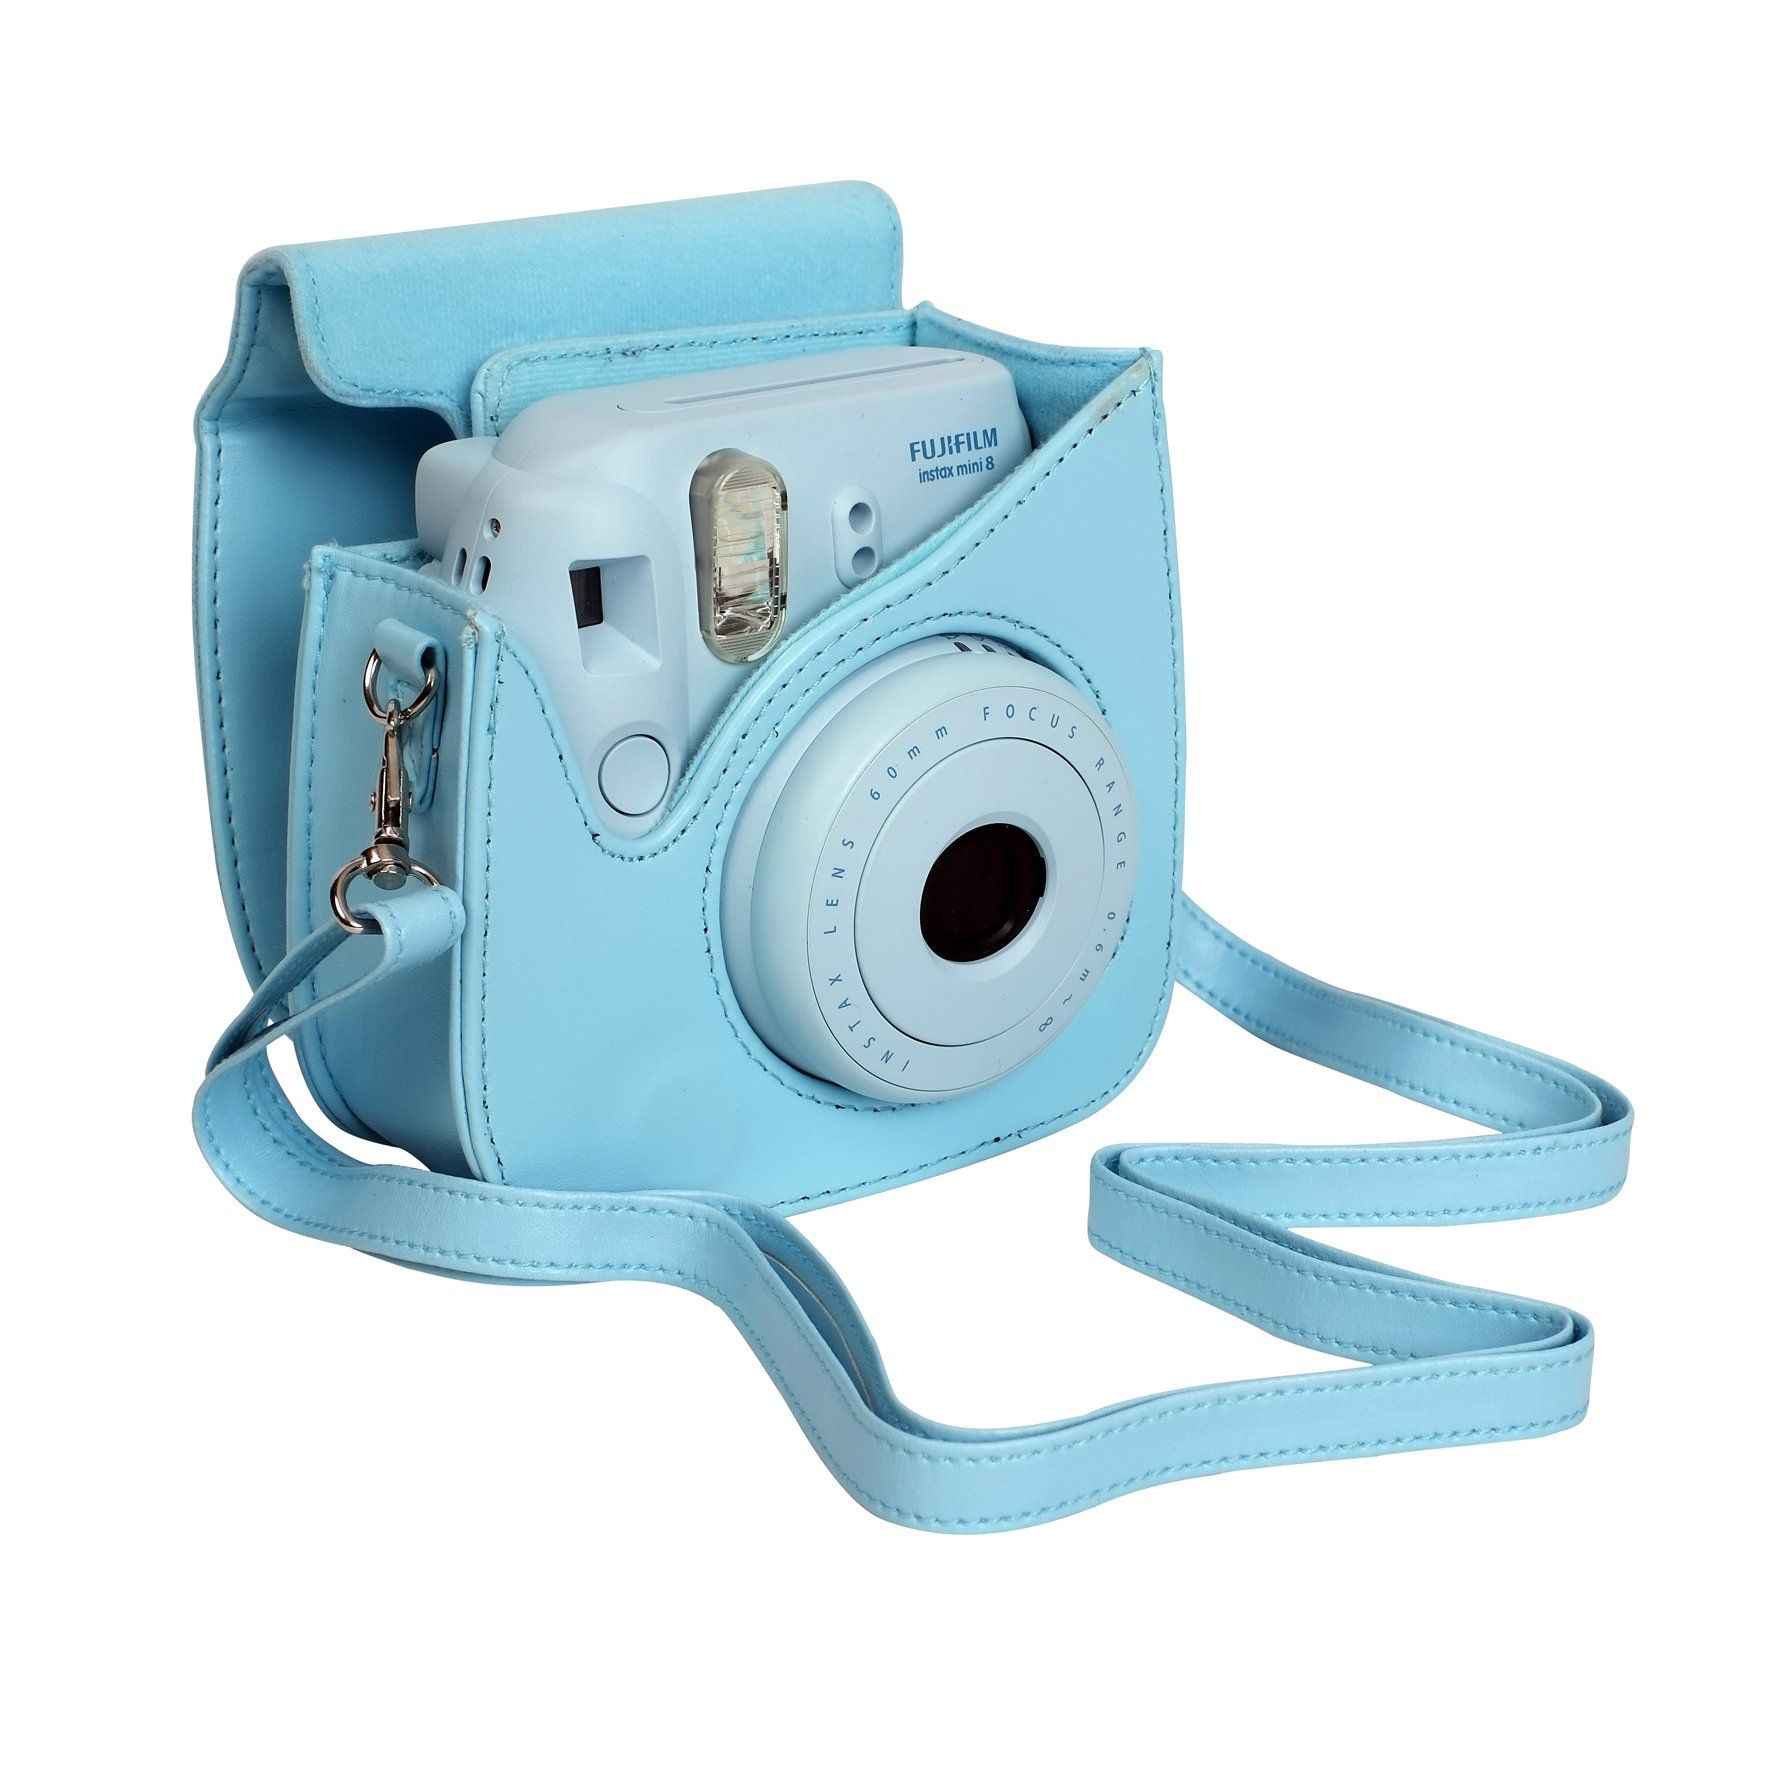 Fujifilm Blue Case For Fuji Instax Mini 8 Camera Amazon Co Uk